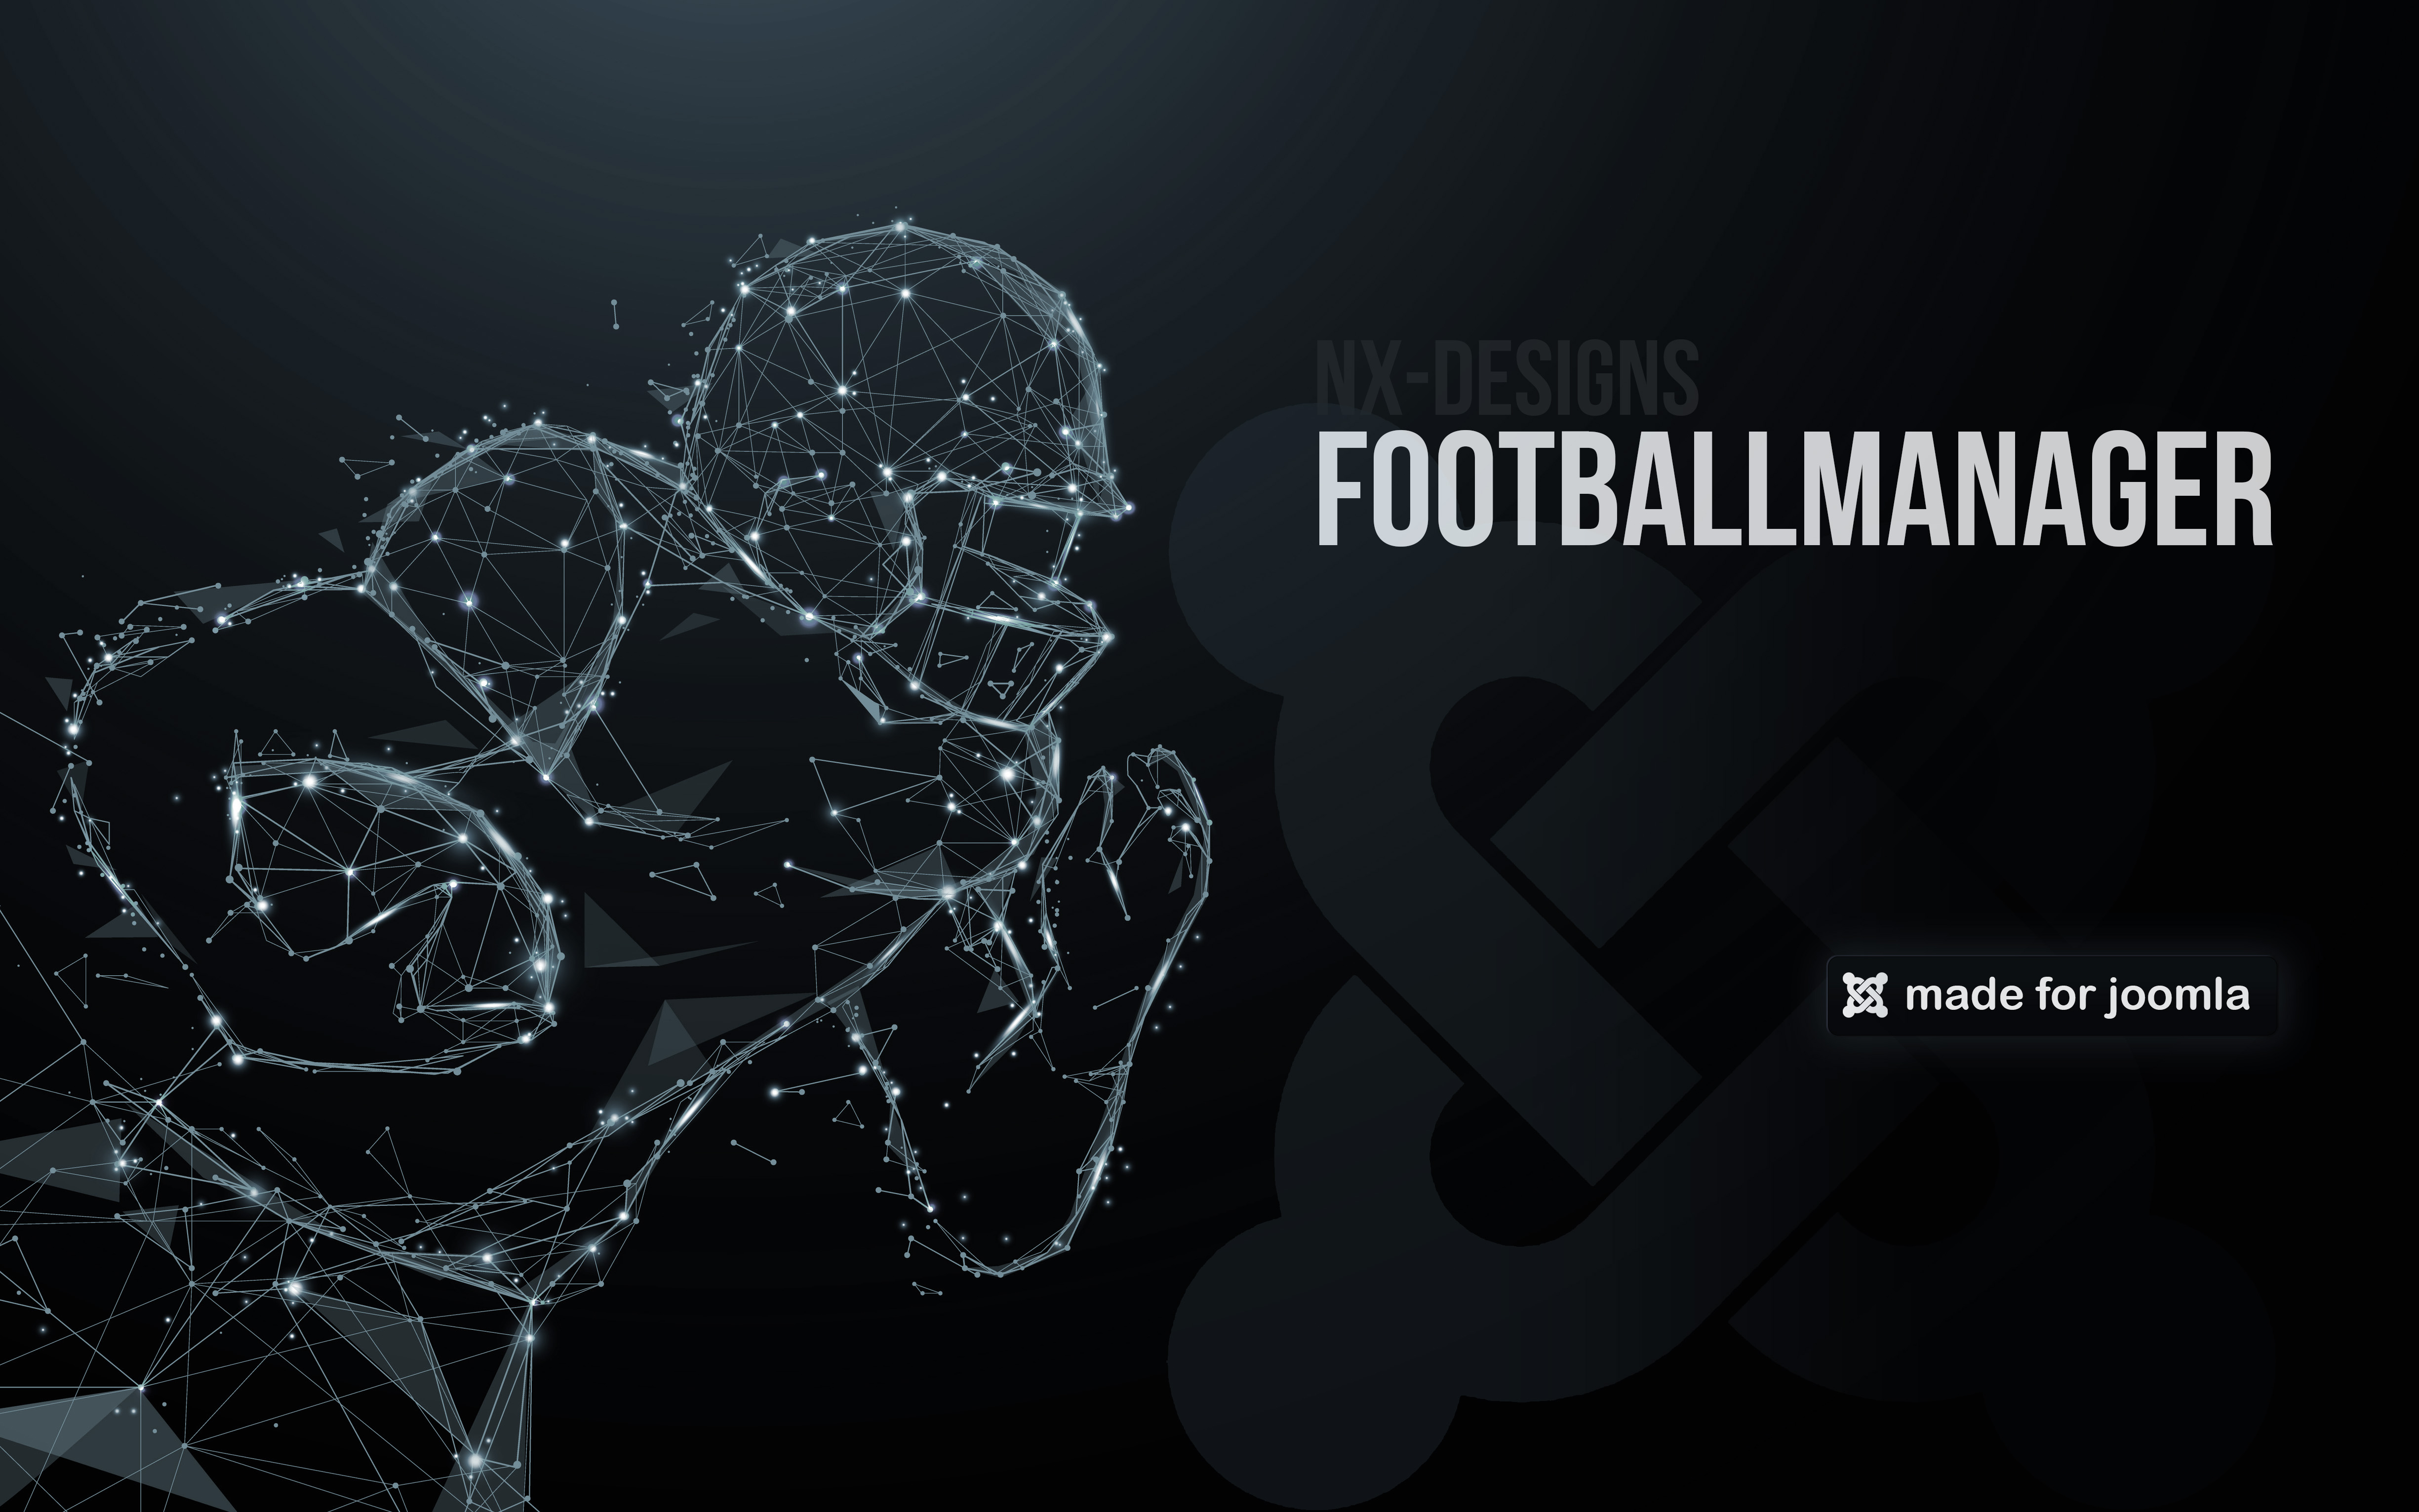 Football Manager Component for Joomla!